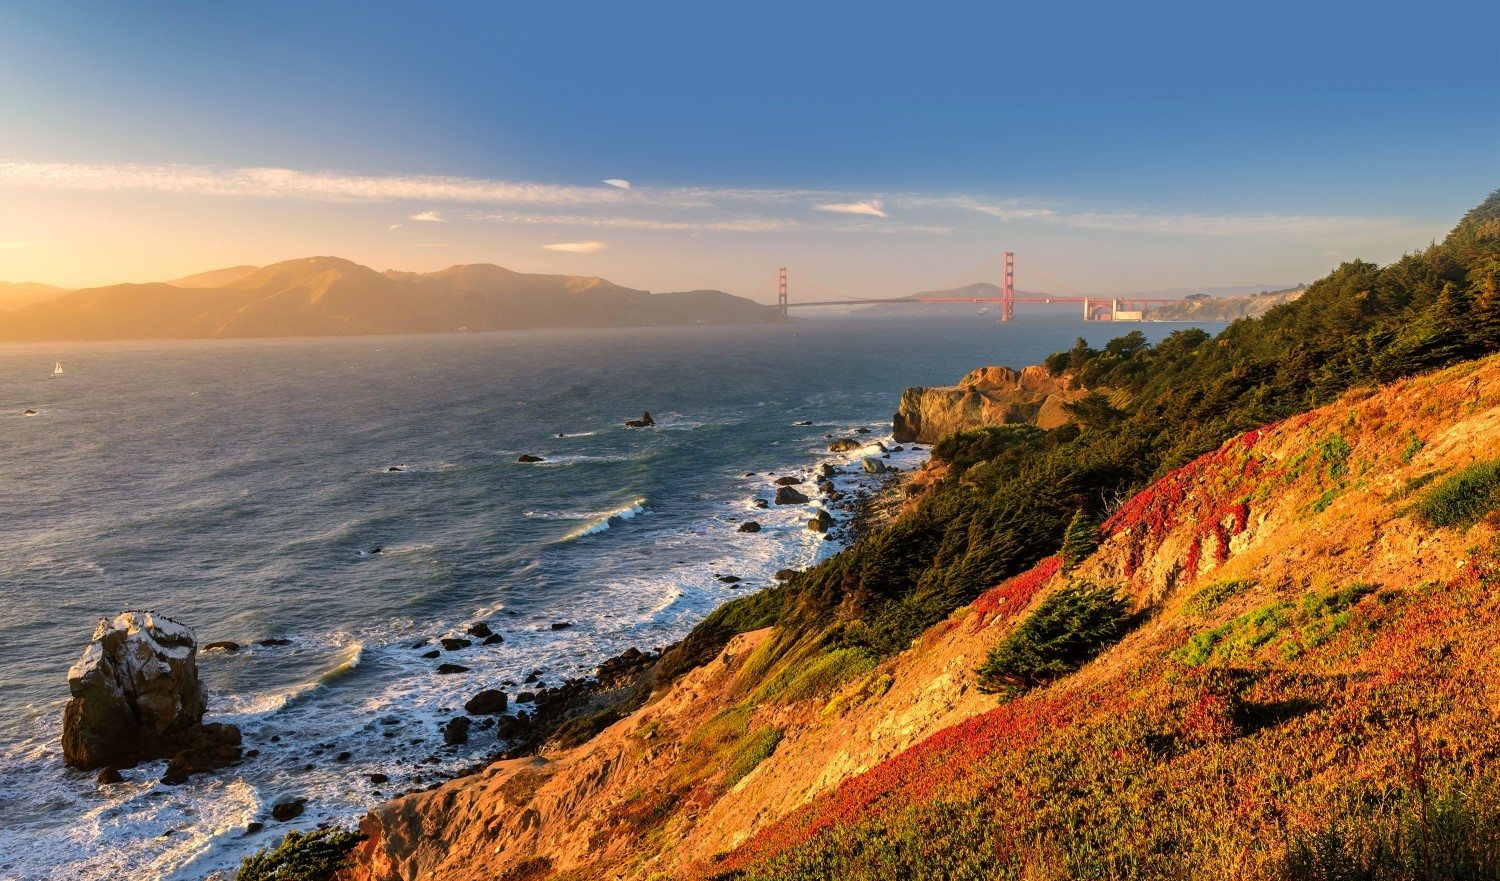 Golden Gate Gulf in San Francisco at sunset, California